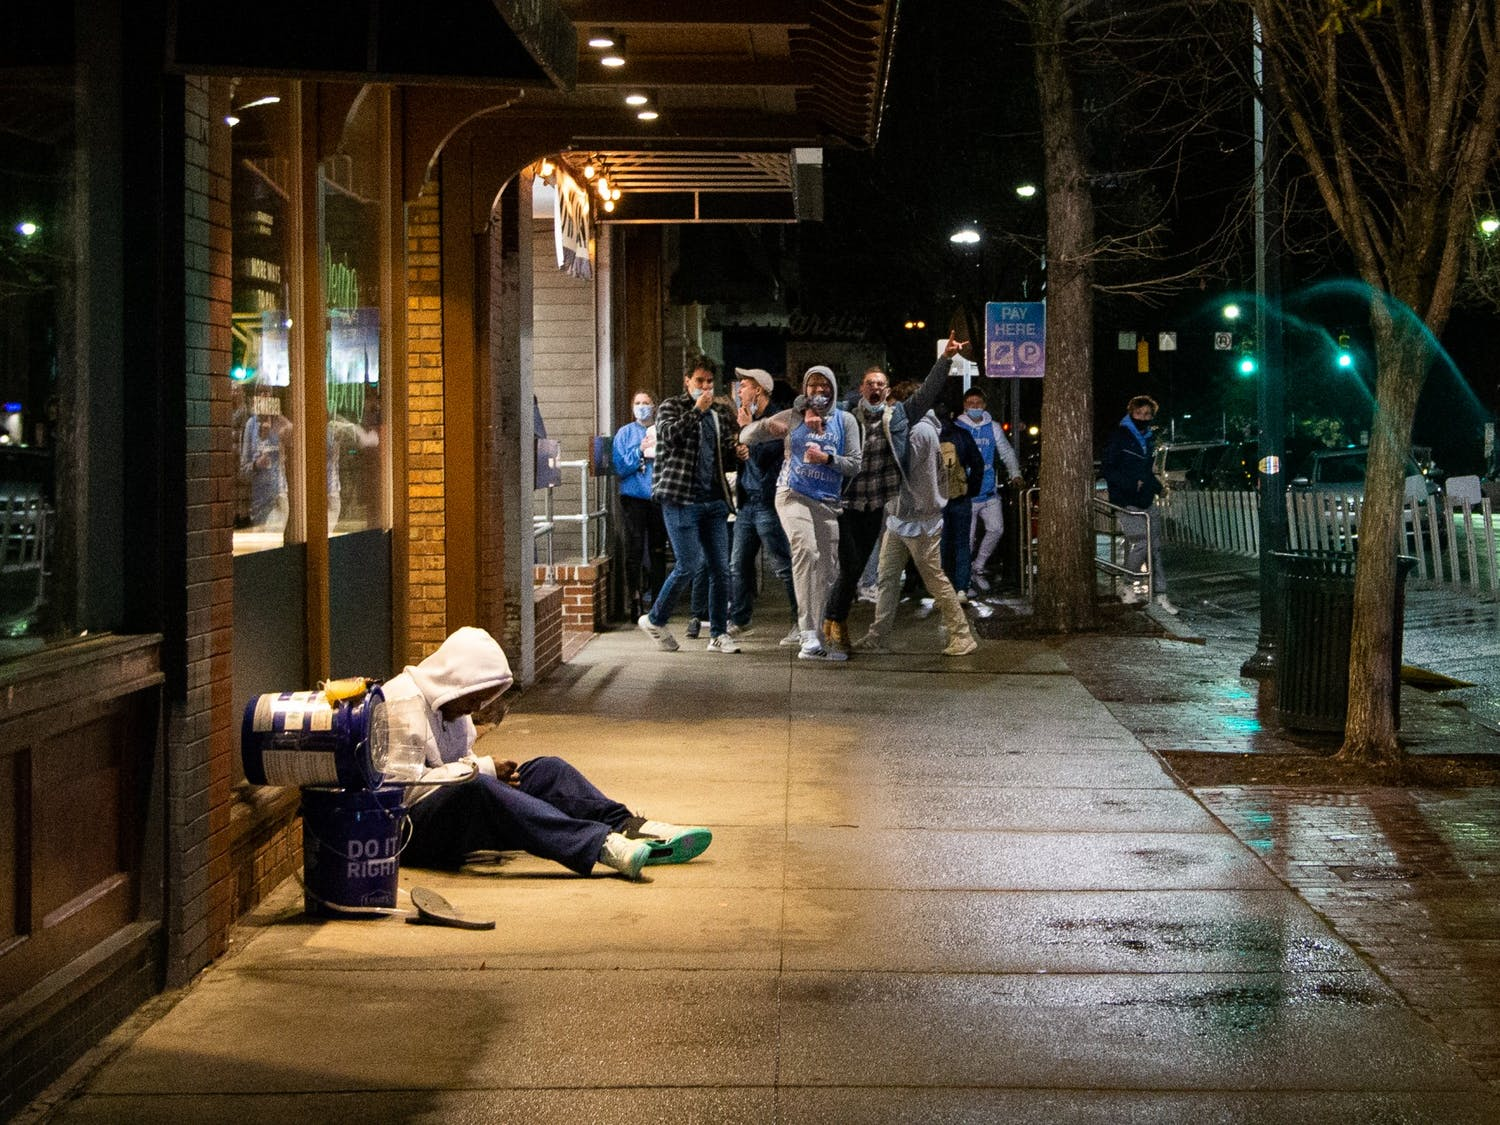 Students celebrating UNC's basketball team triumphs over Duke prepare to rush Franklin Street on Saturday, Feb. 6, 2021, while an unhoused man sits under an awning to stay out of the rain.